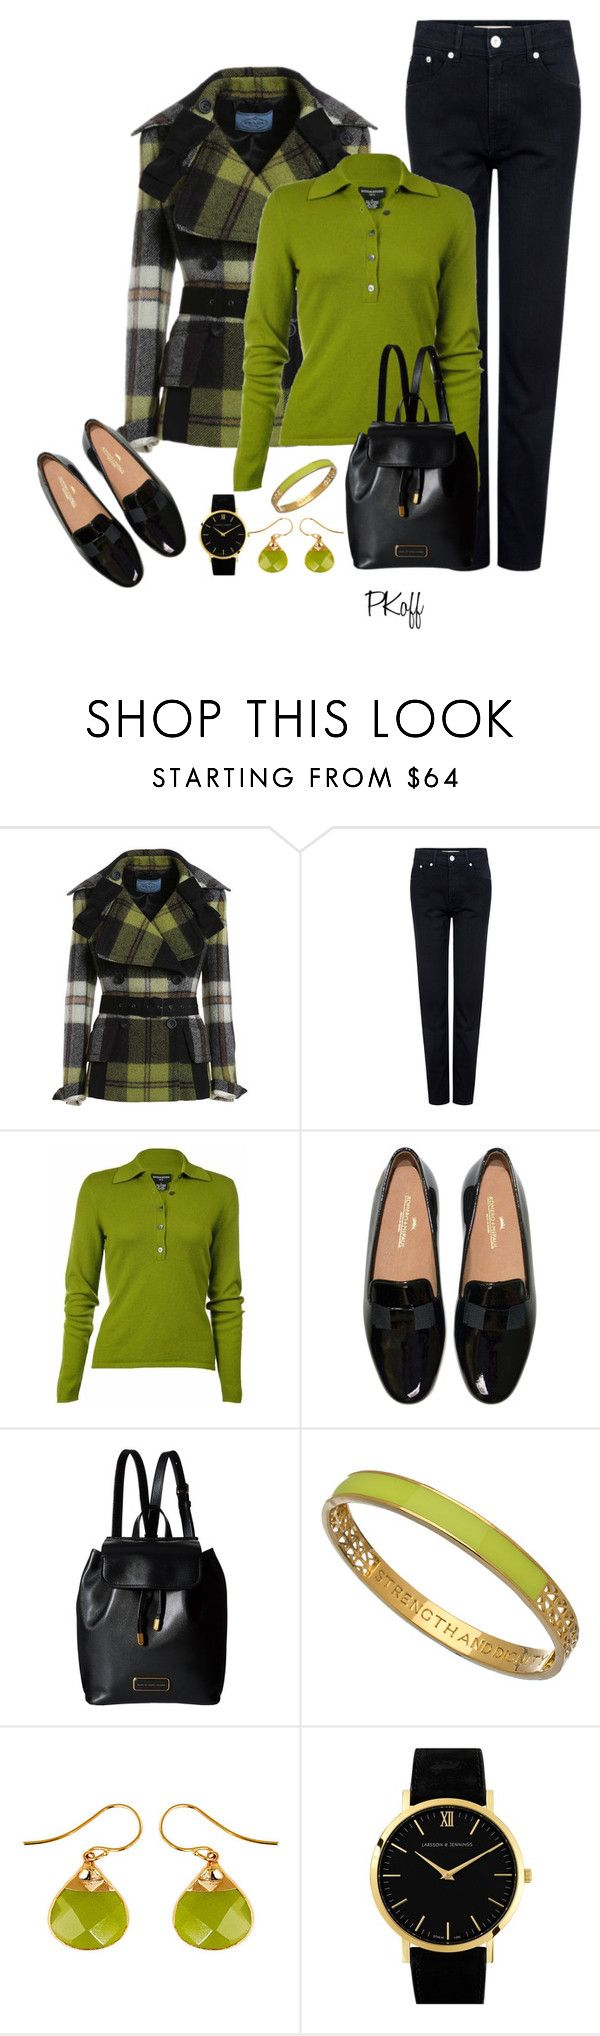 """""""Happy Friday!"""" by pkoff ❤ liked on Polyvore featuring Être Cécile, Sutton Studio, Marc by Marc Jacobs, Matterial Fix, Janna Conner and Larsson & Jennings"""